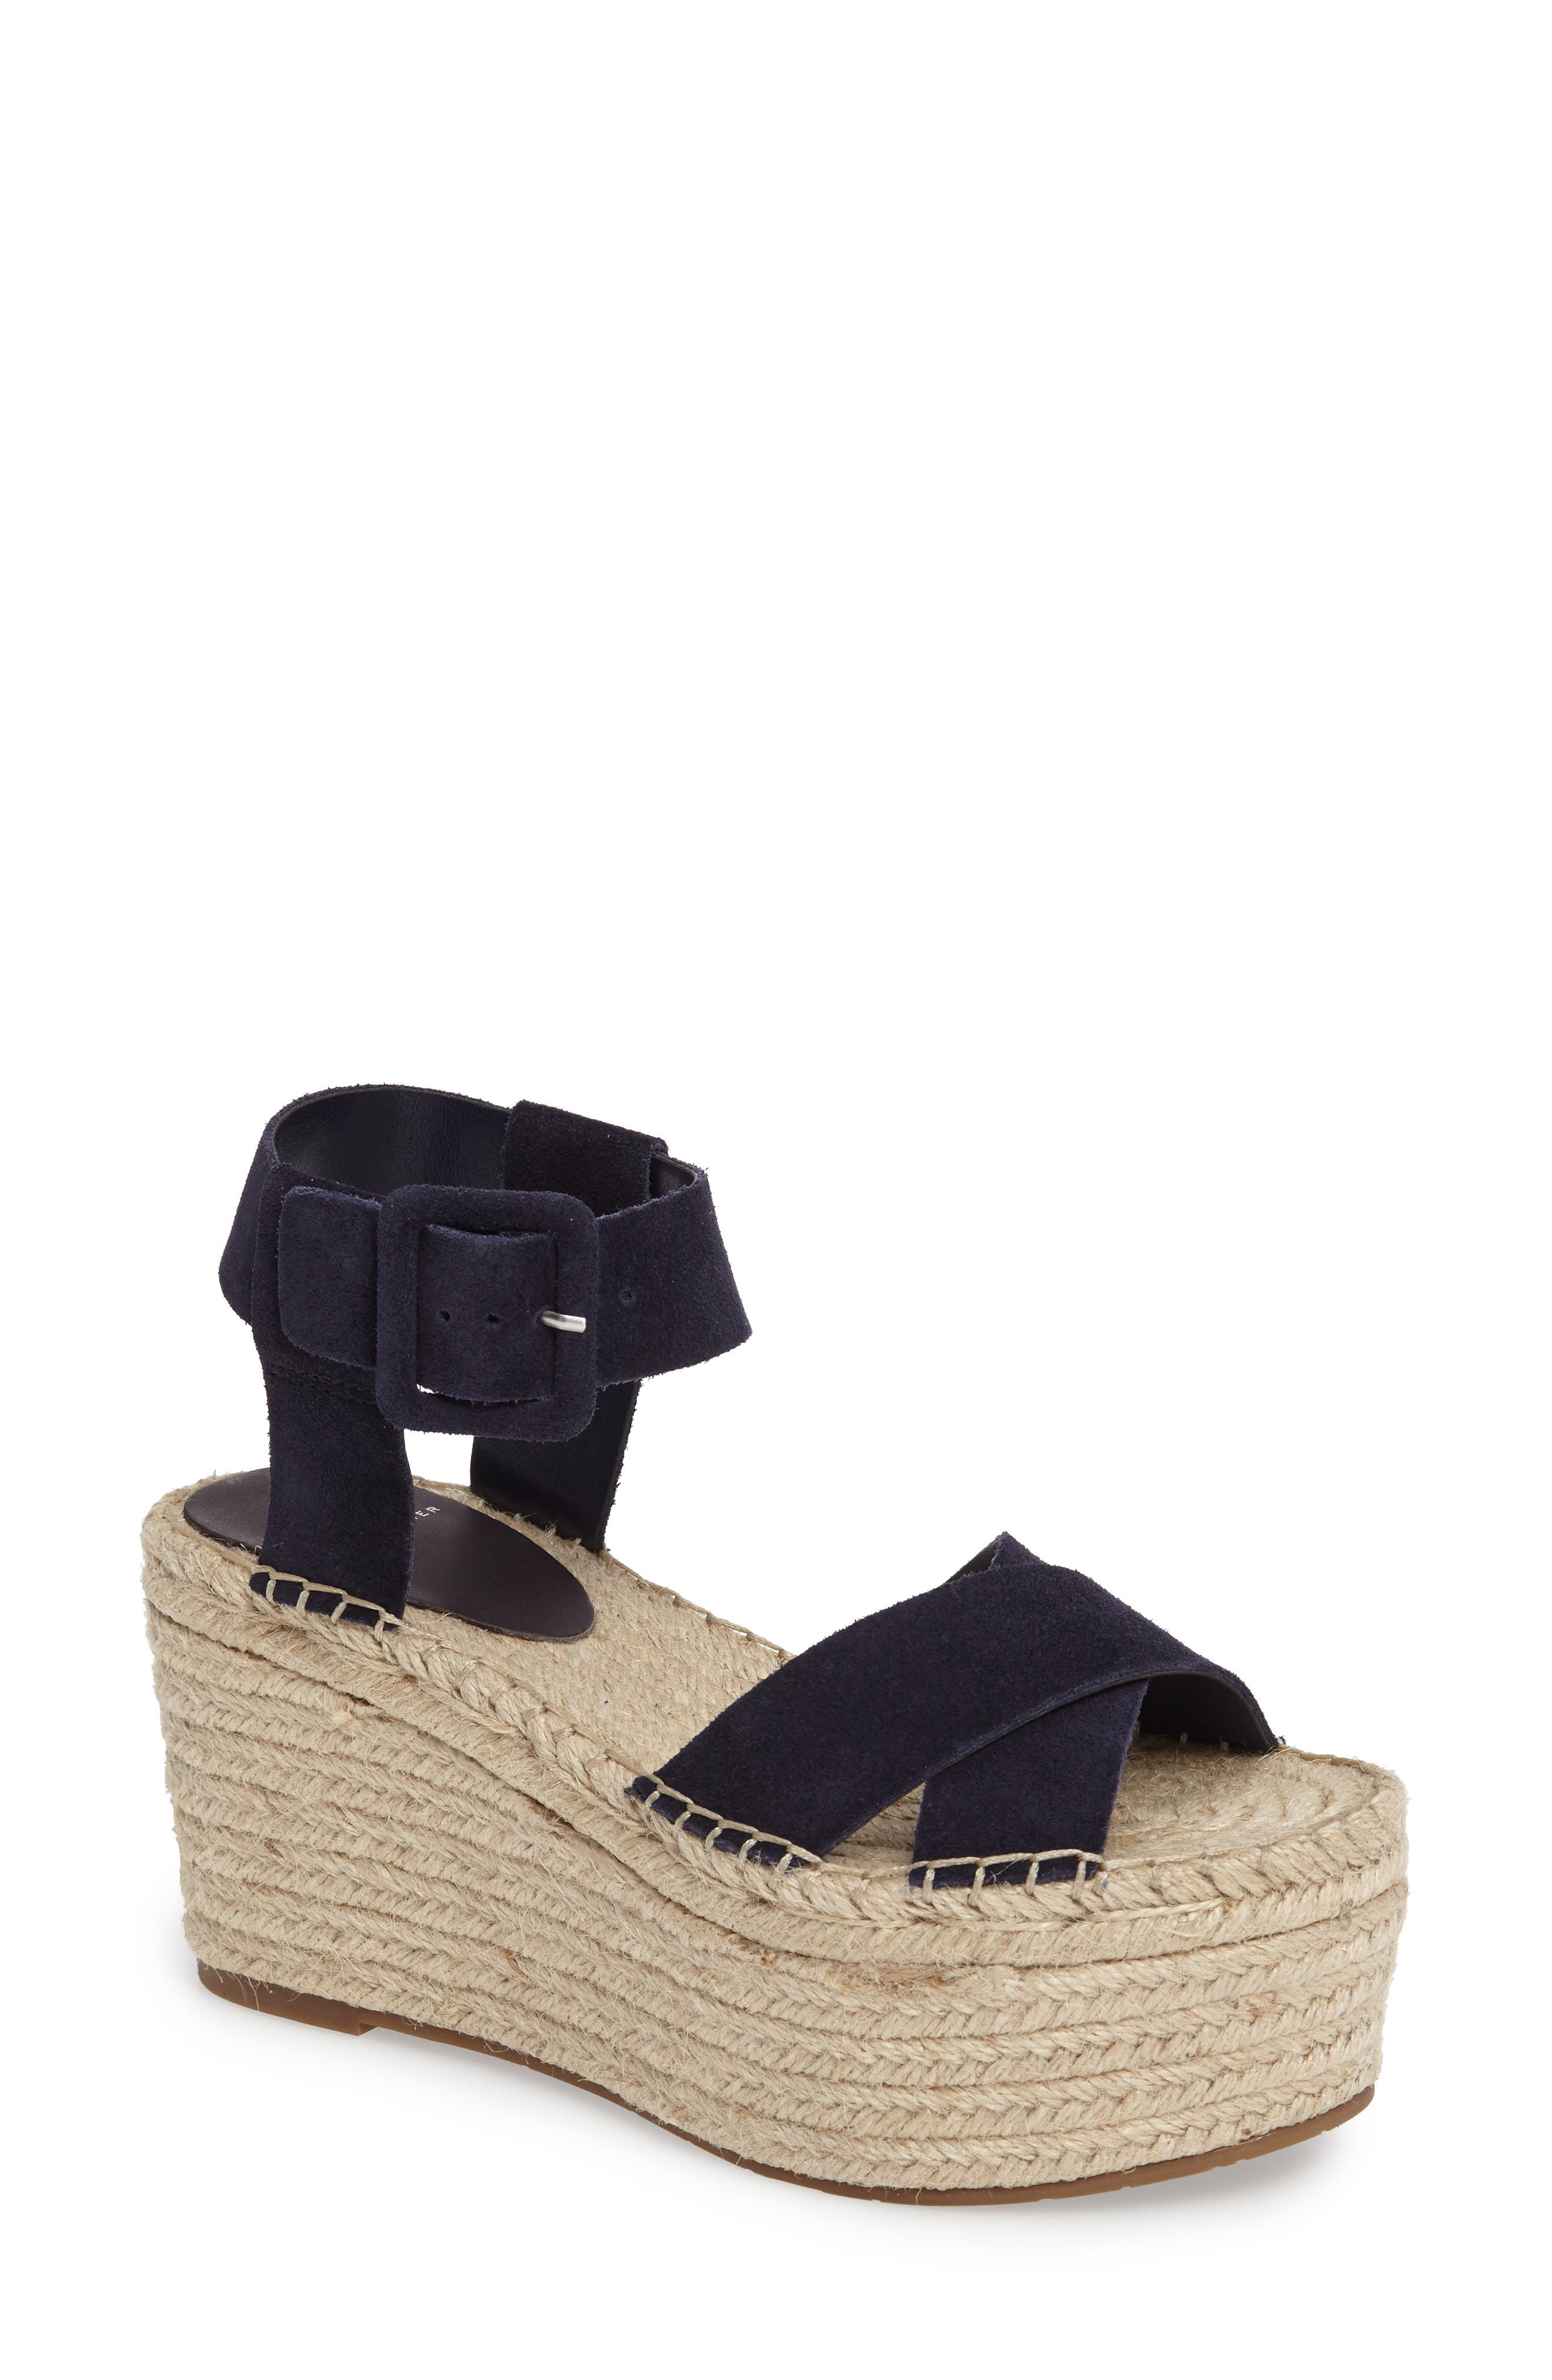 MARC FISHER LTD, 'Randall' Platform Wedge, Main thumbnail 1, color, NAVY SUEDE